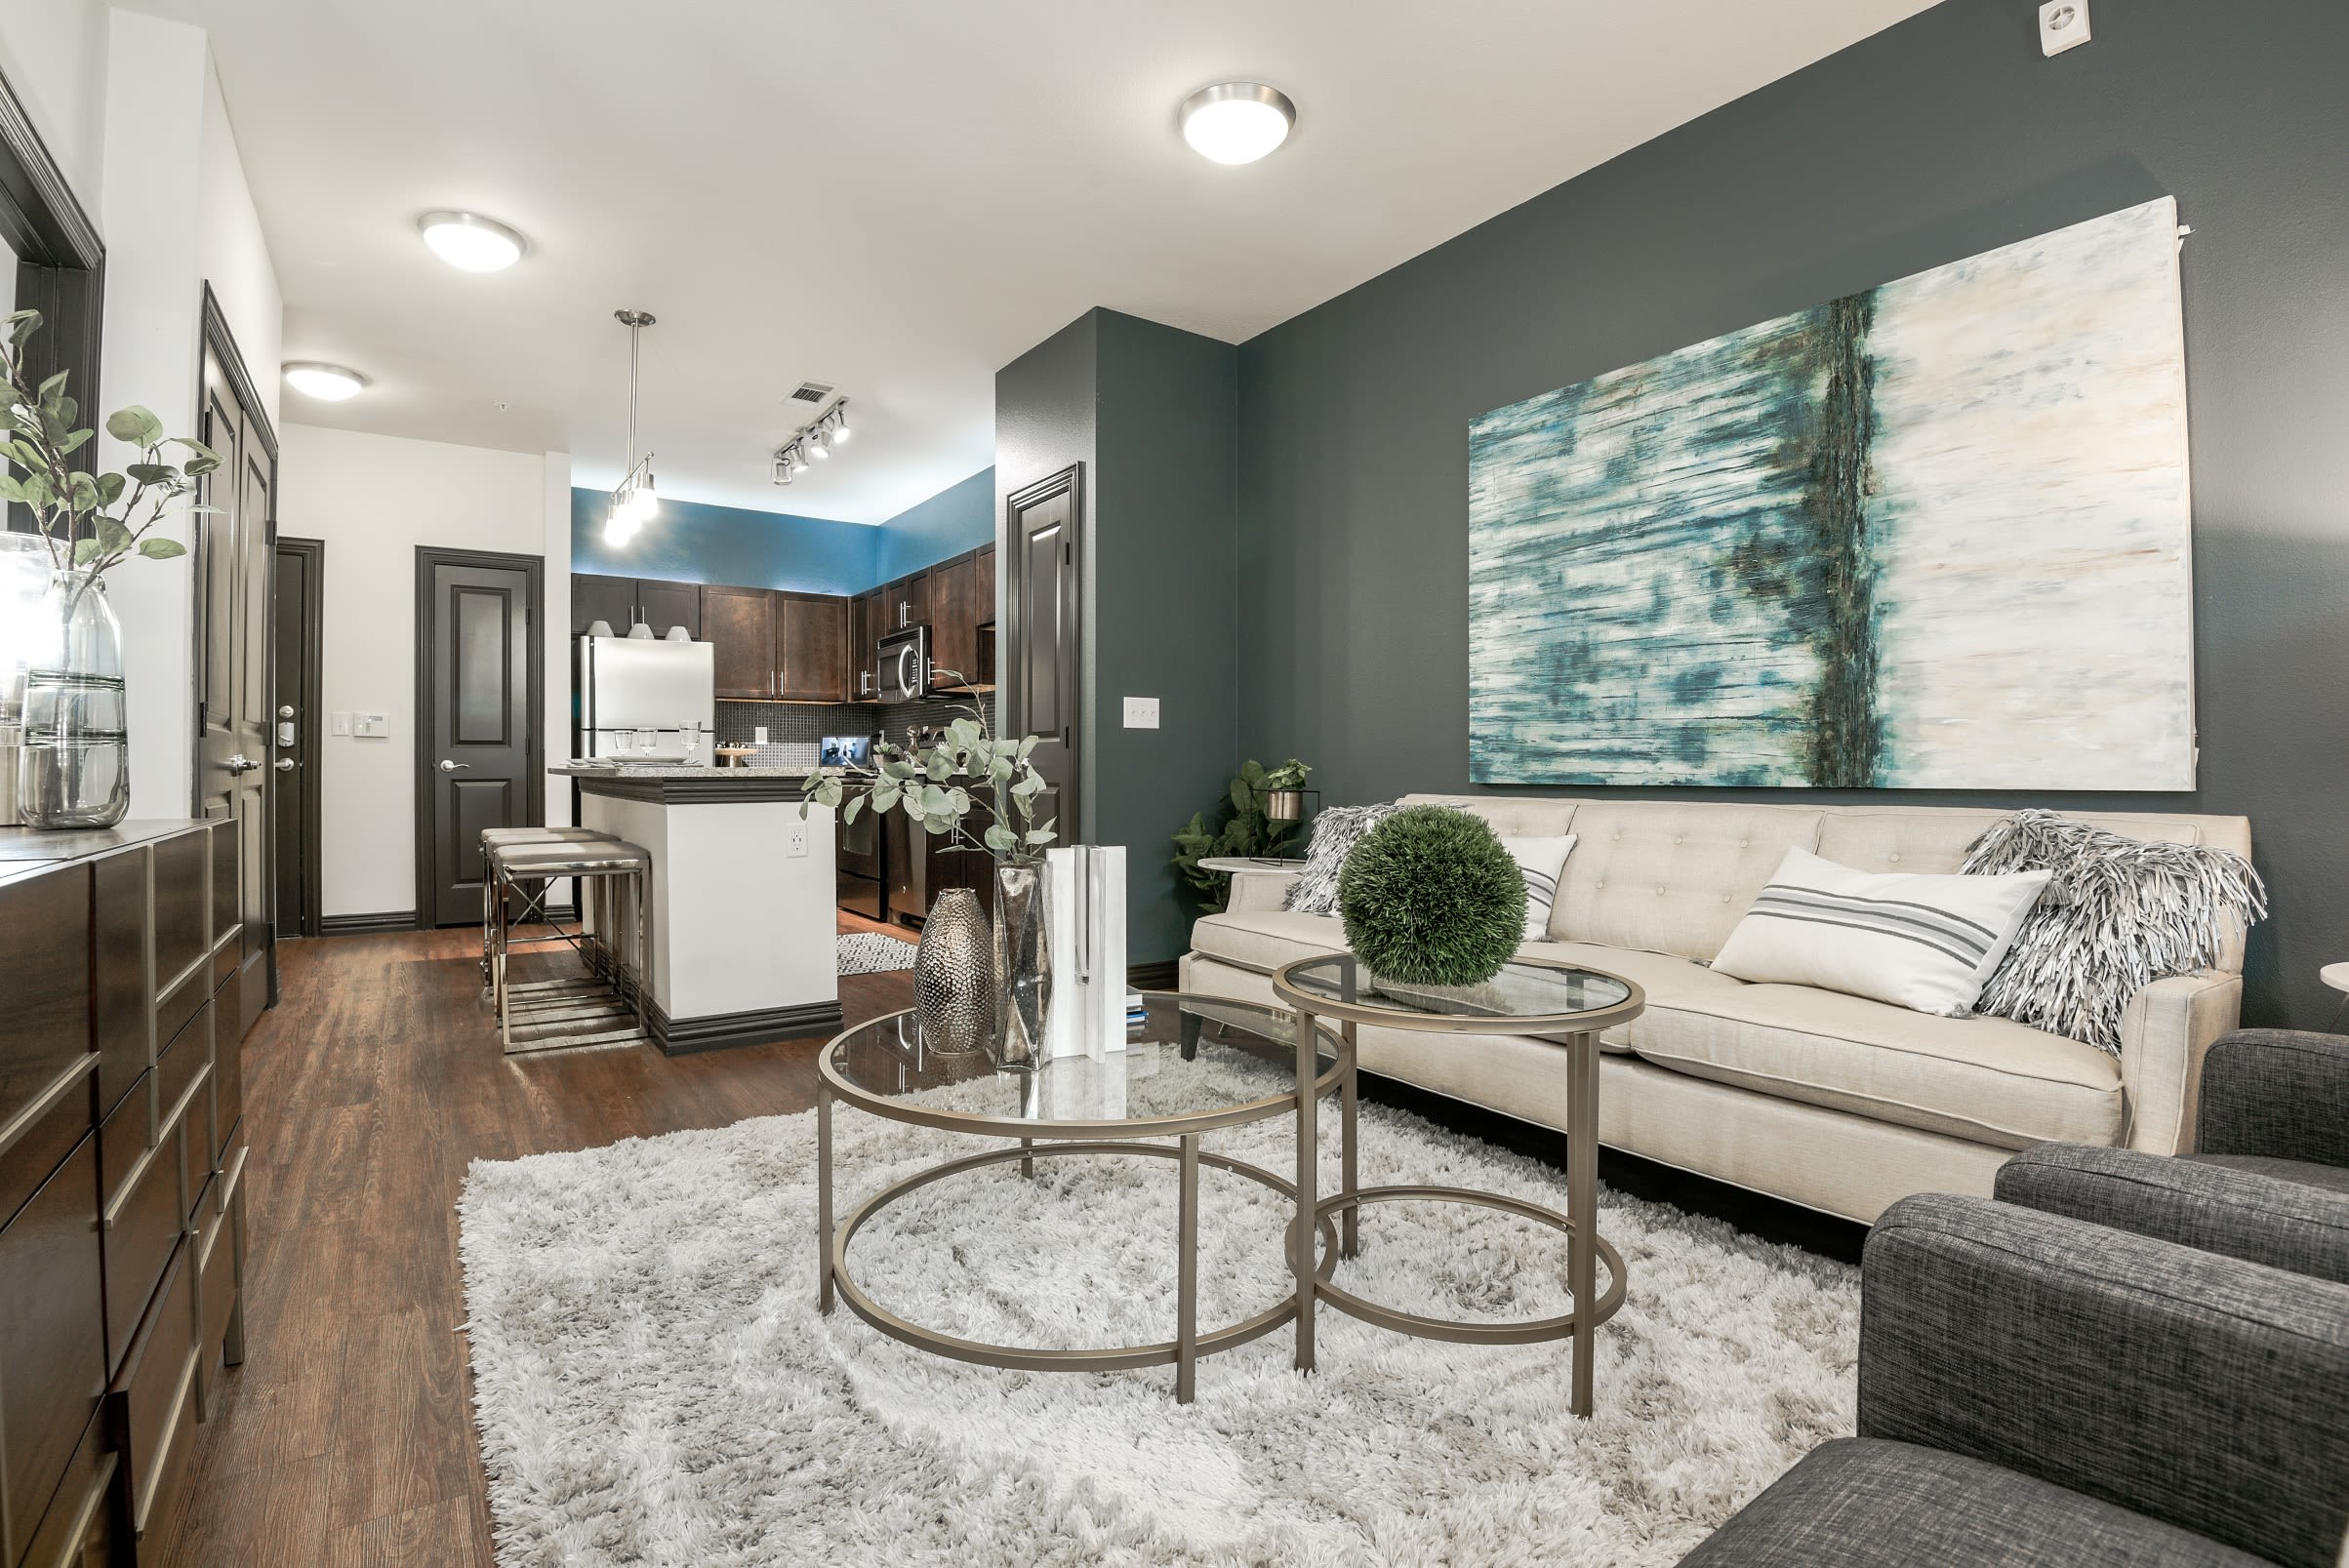 Modern decor and hardwood floors in open concept floor plan at The Blvd in Irving, Texas